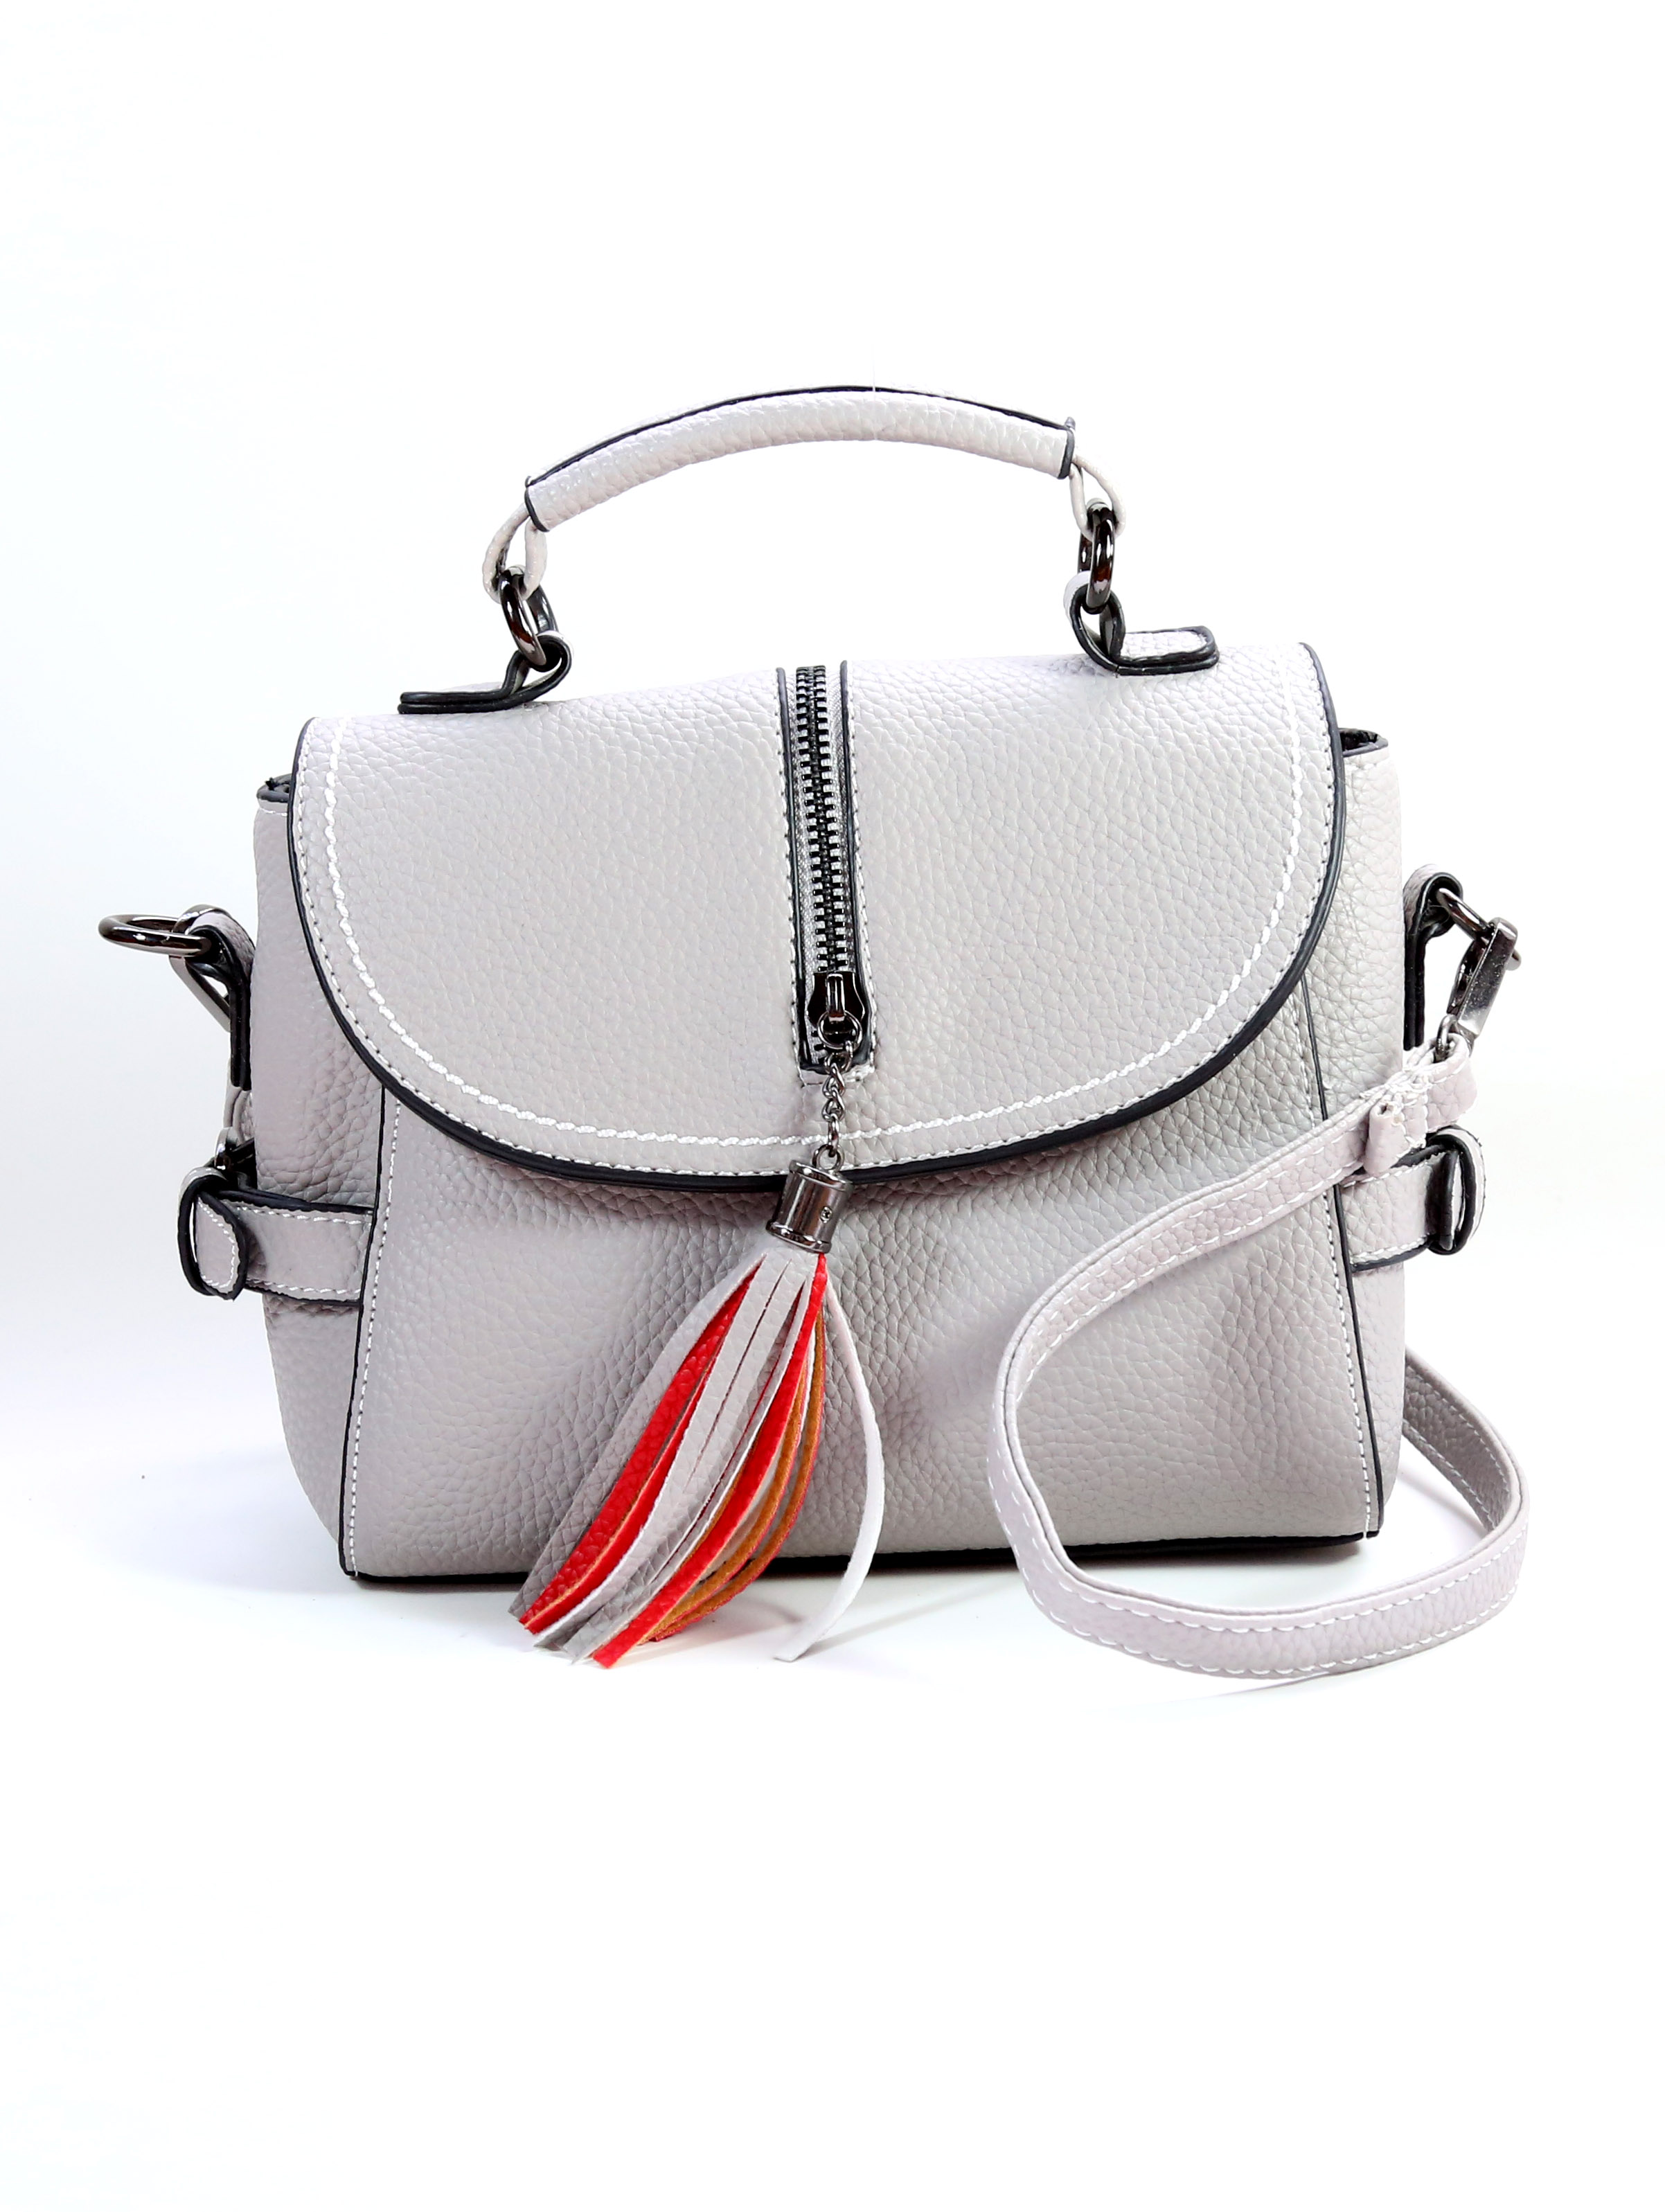 Handbags - Our Leather Handbags are the perfect accessory to set off your outfit. With a number of colors and sizes we are sure you will find one to your liking.